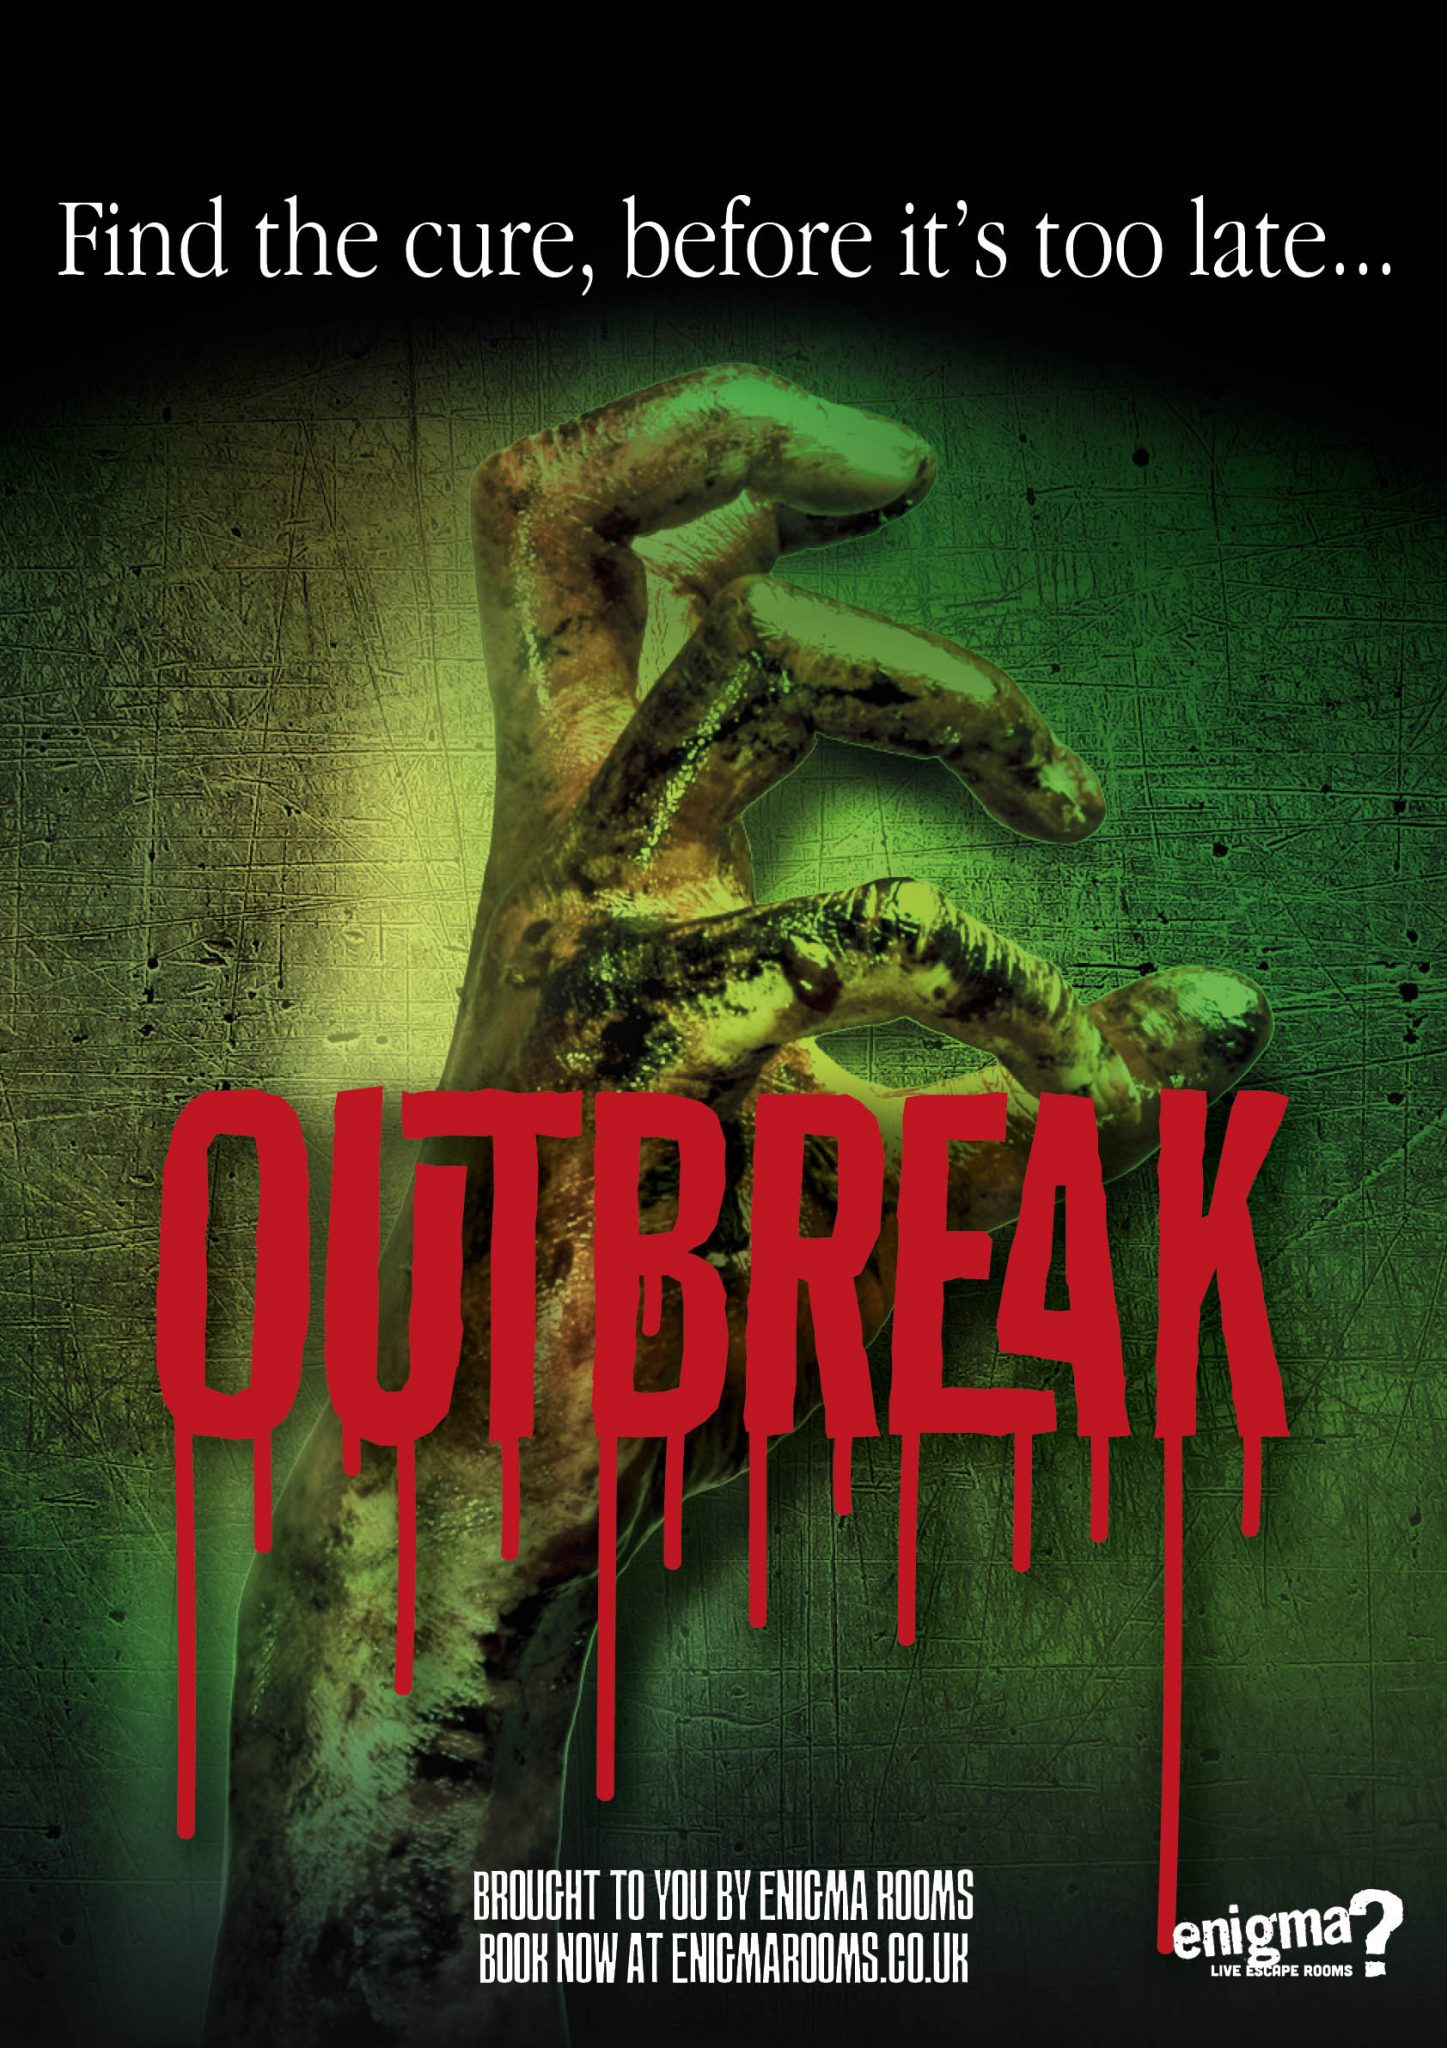 Enigma live escape rooms - movie poster of the outbreak enigma room